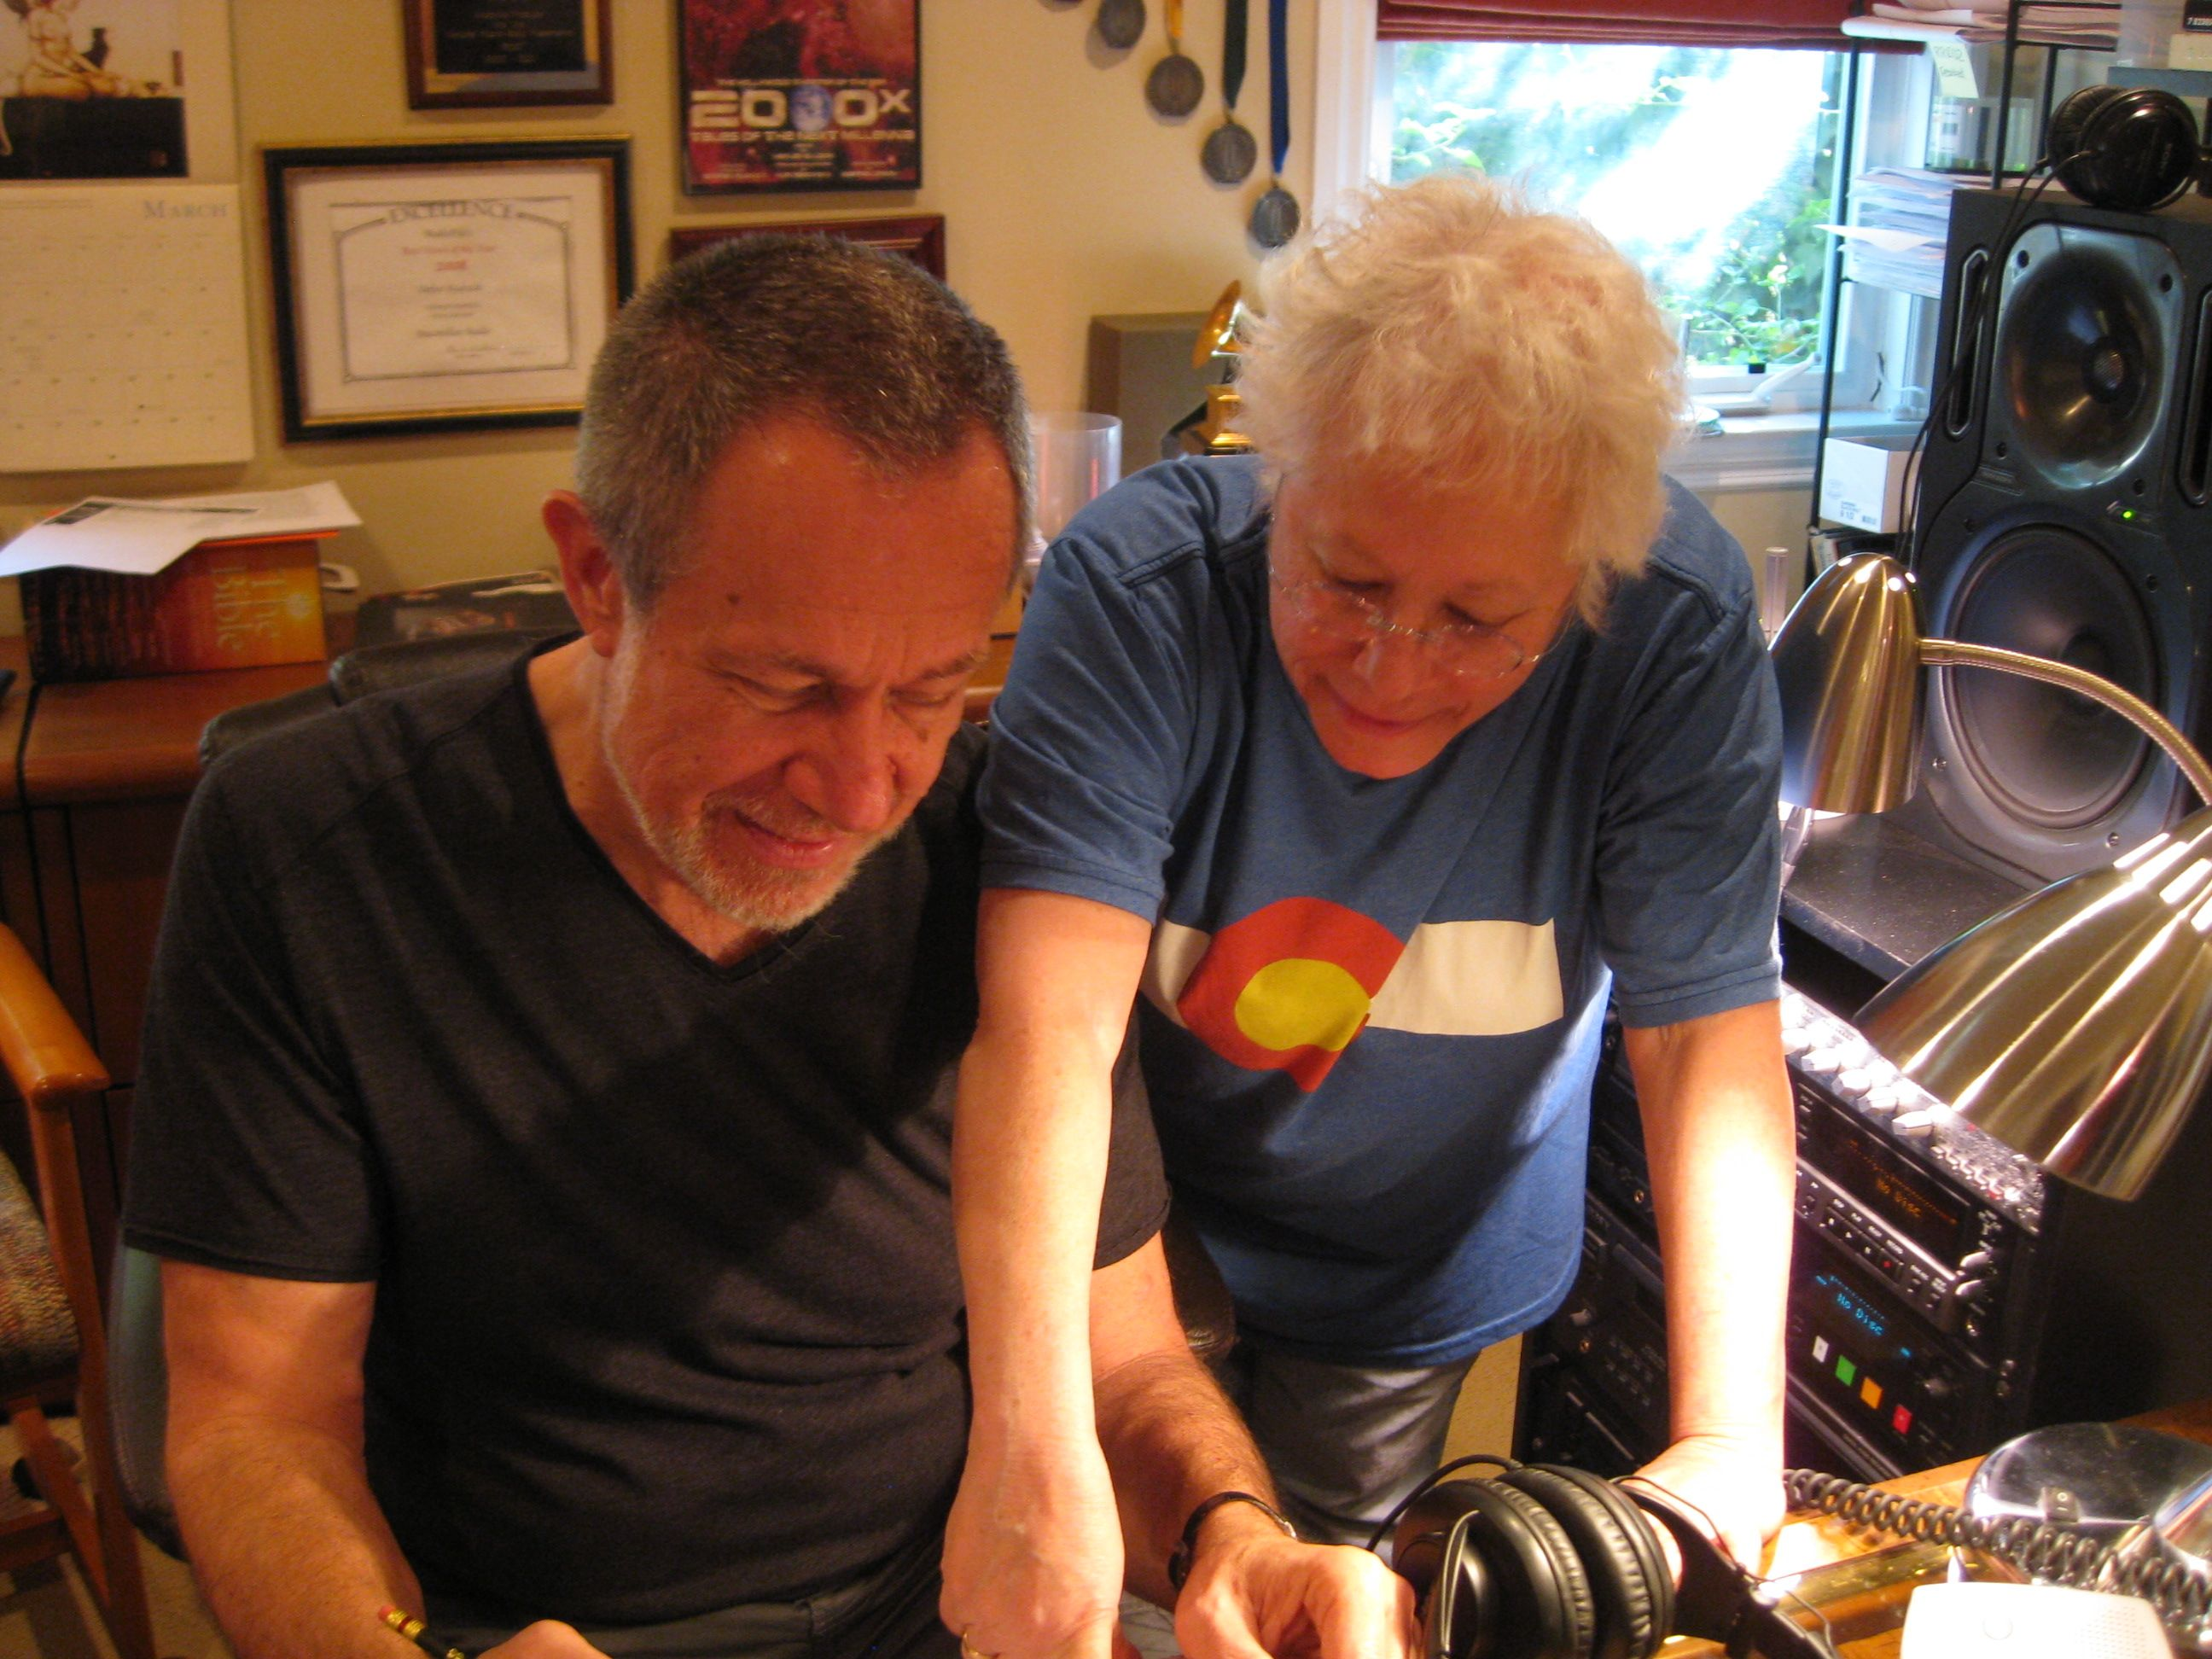 Stefan and Janis in the Studio.